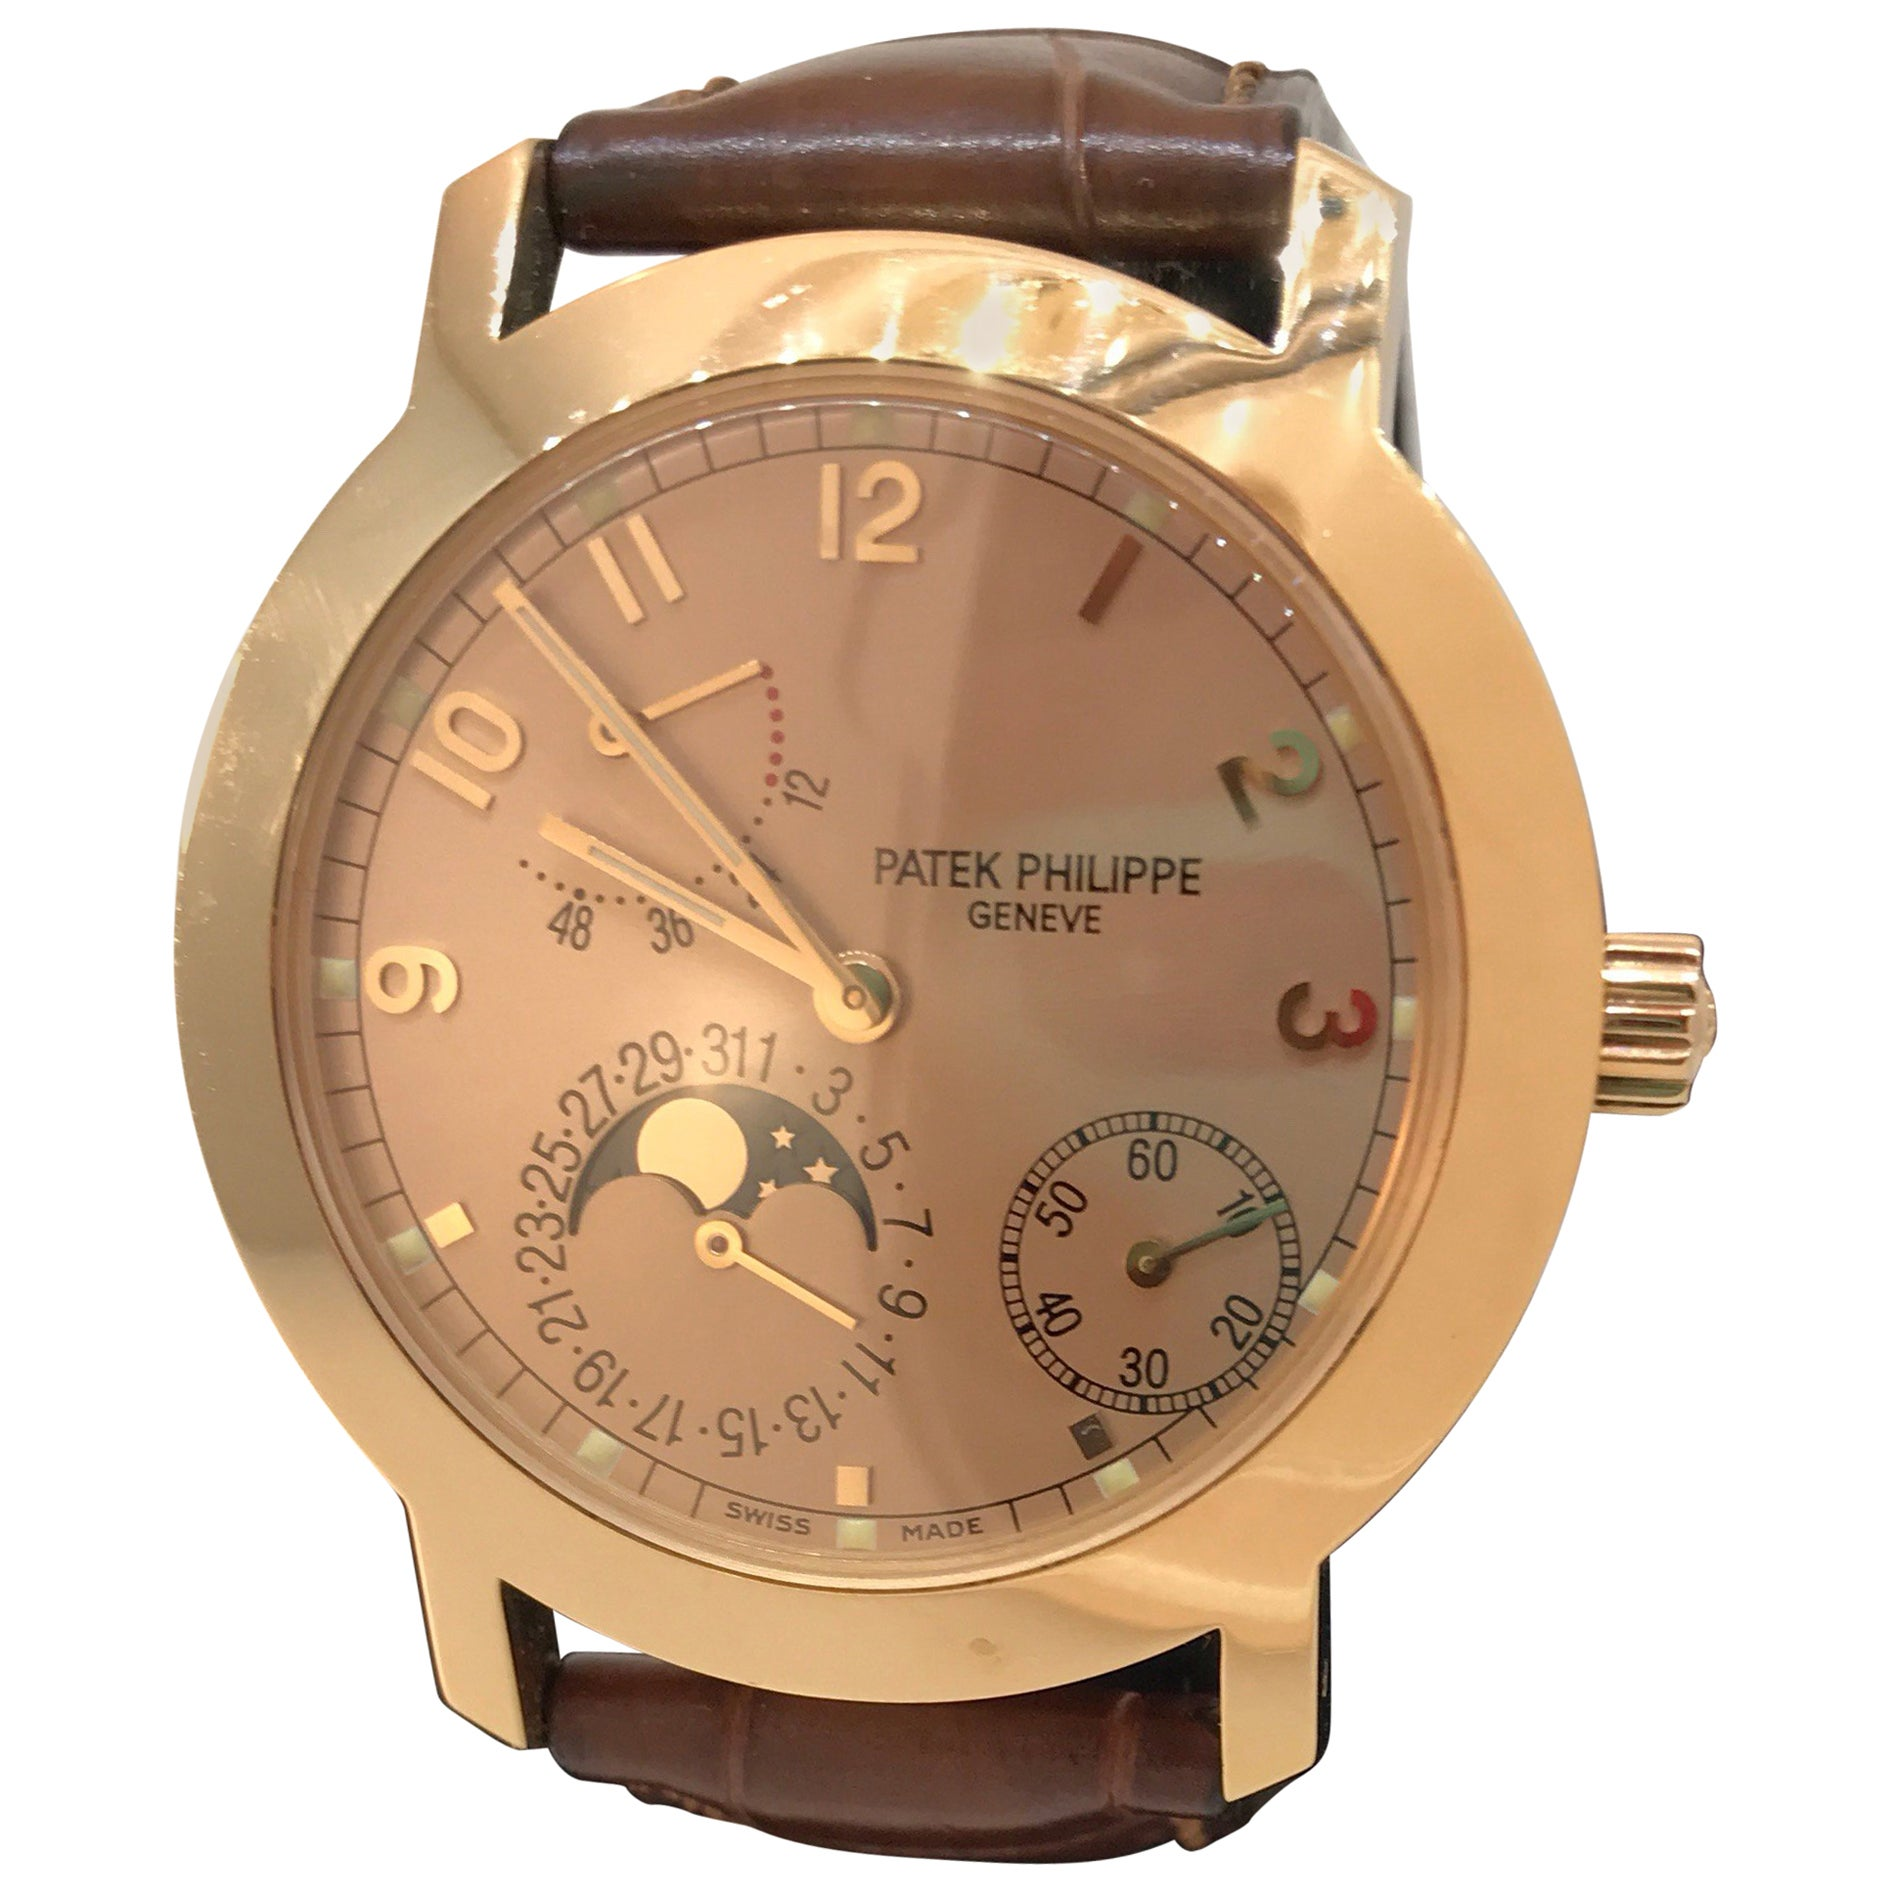 0d717529014 Patek Philippe Rose Gold Calatrava Moonphase Complication Automatic  Wristwatch at 1stdibs